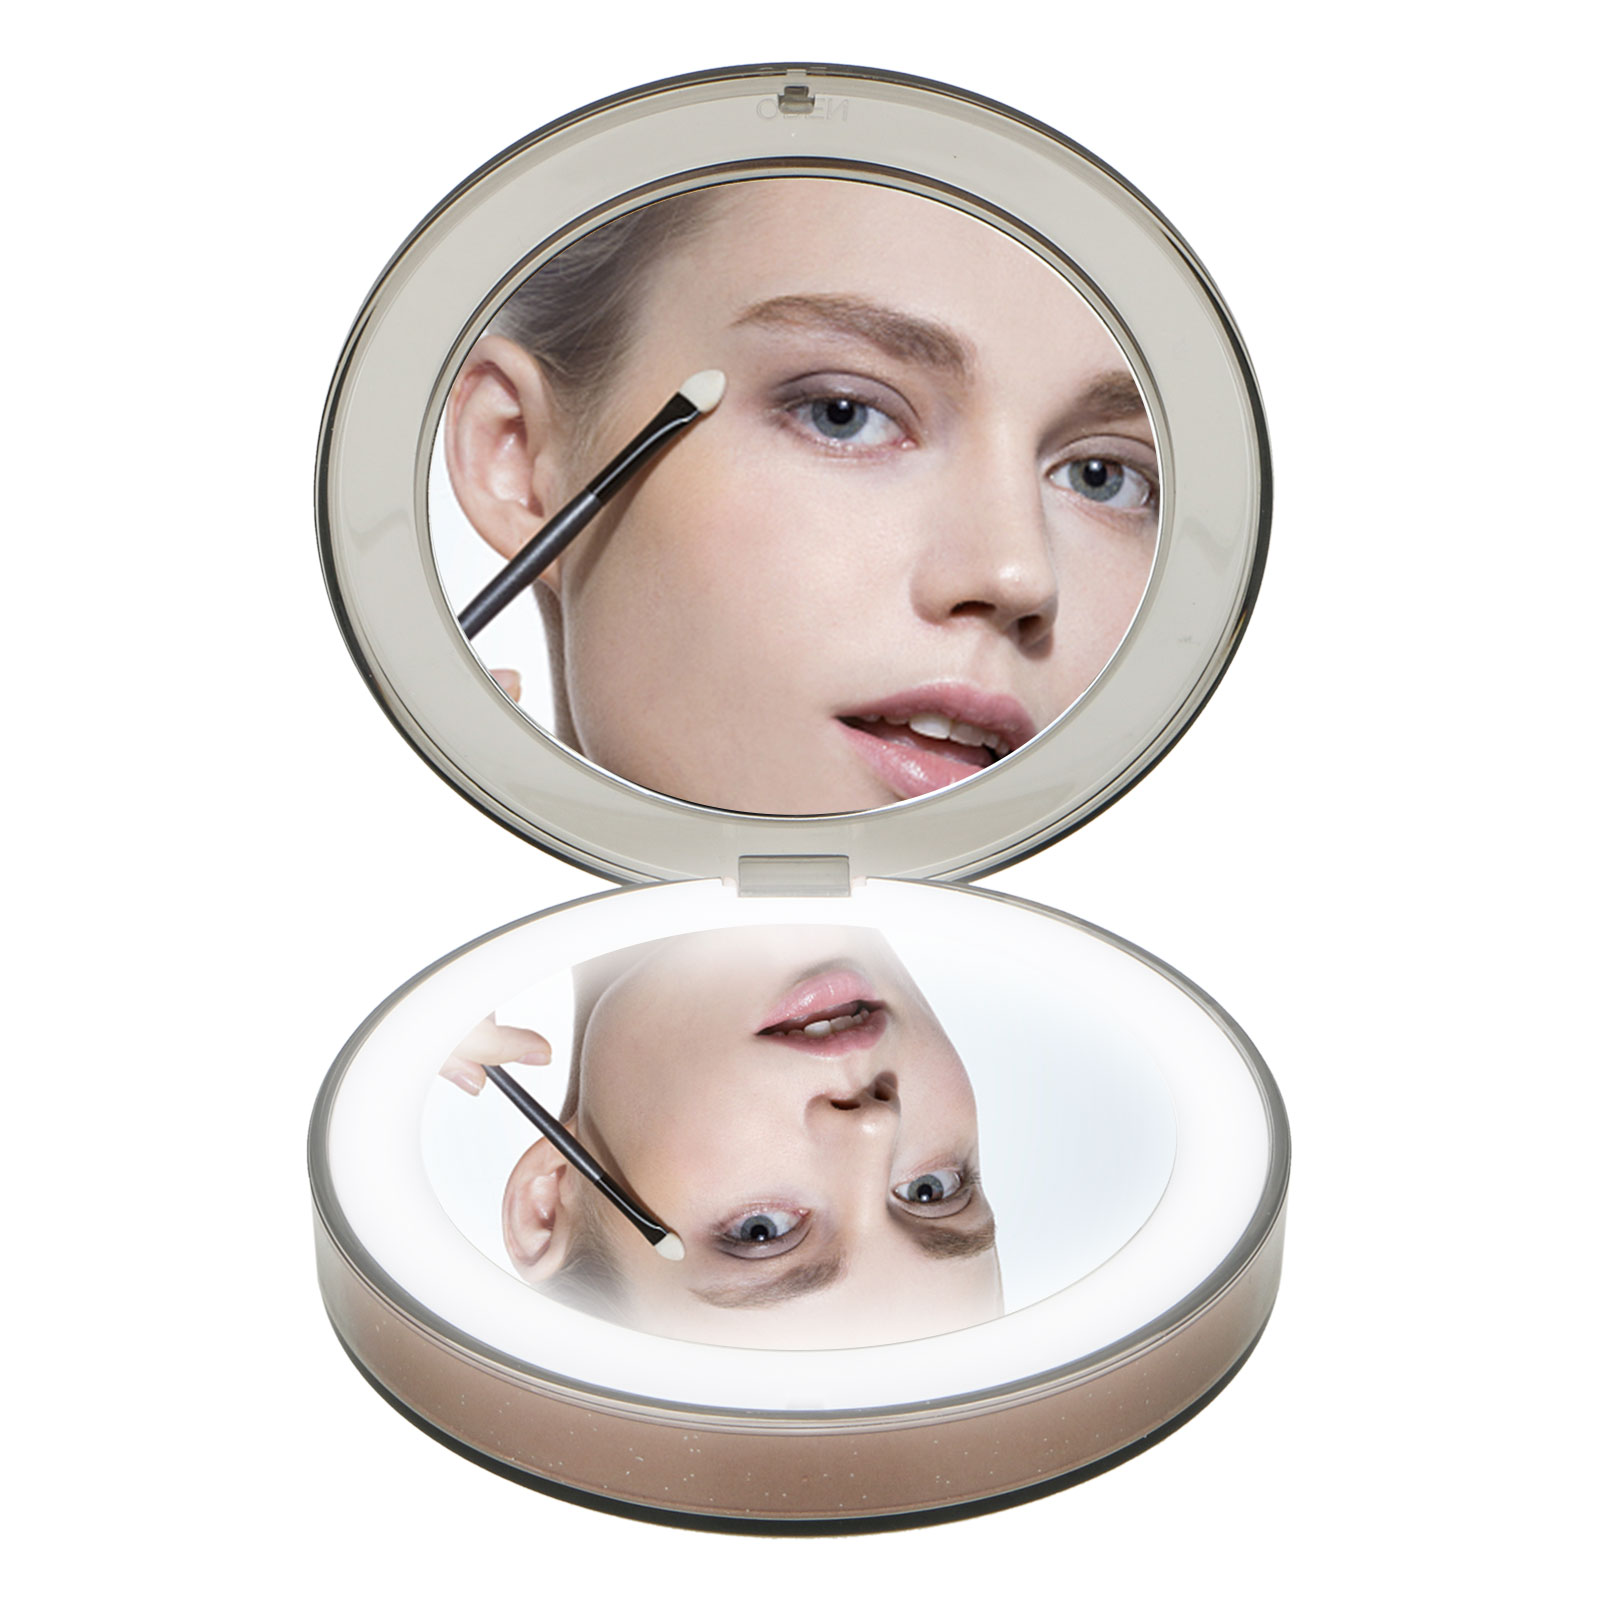 LED Travel Makeup Mirror, EEEKit 1X 3X Magnification Folding LED Lighted Double Sided Makeup Mirror Portable Compact Vanity Cosmetic Travel Pocket Mirror